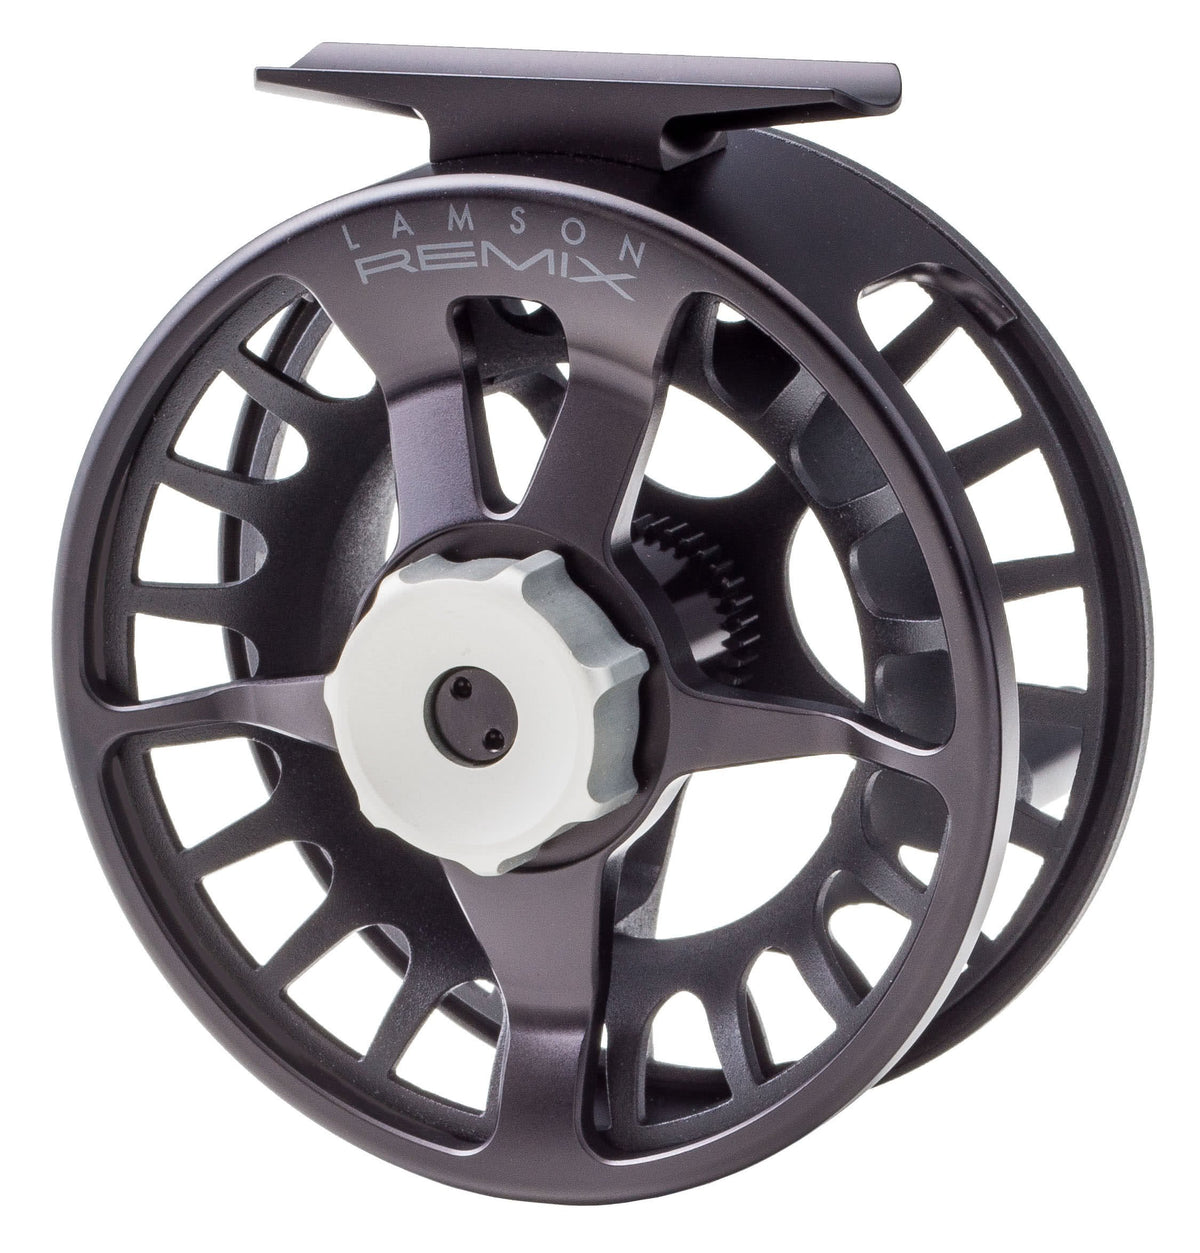 Waterworks Lamson Remix Fly Reel Case